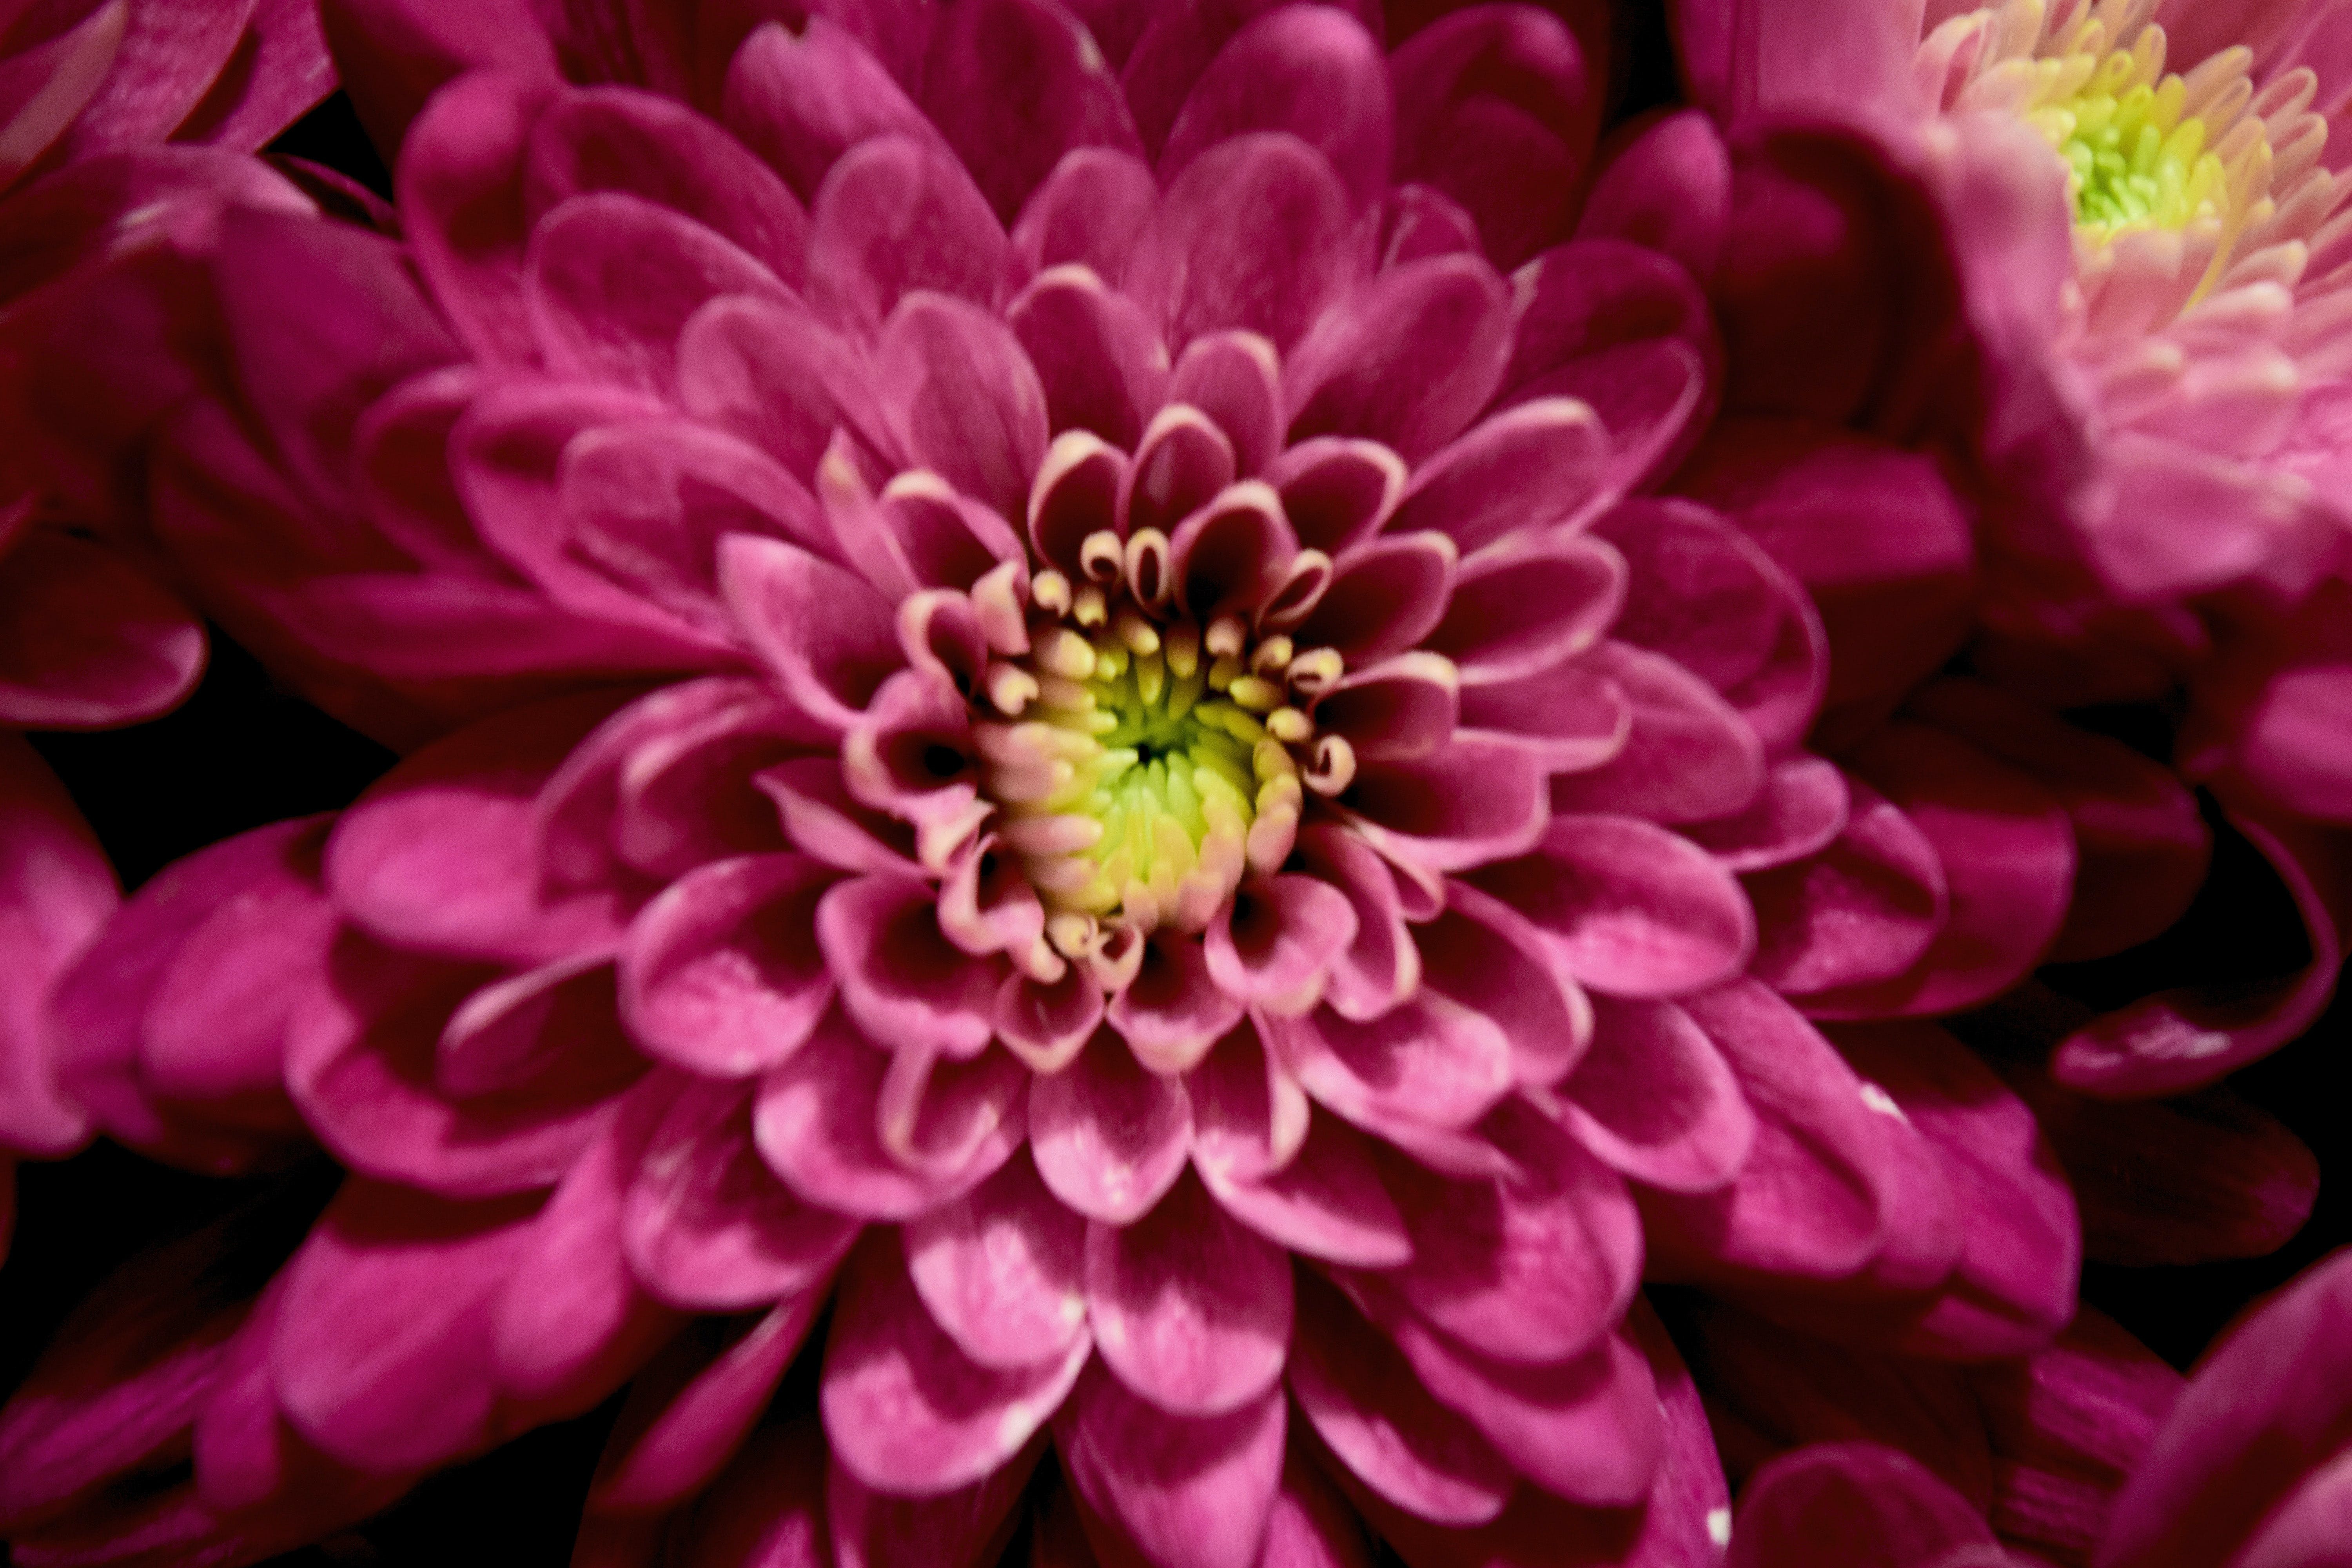 Close-up Photography of Pink Chrysanthemum Flowers